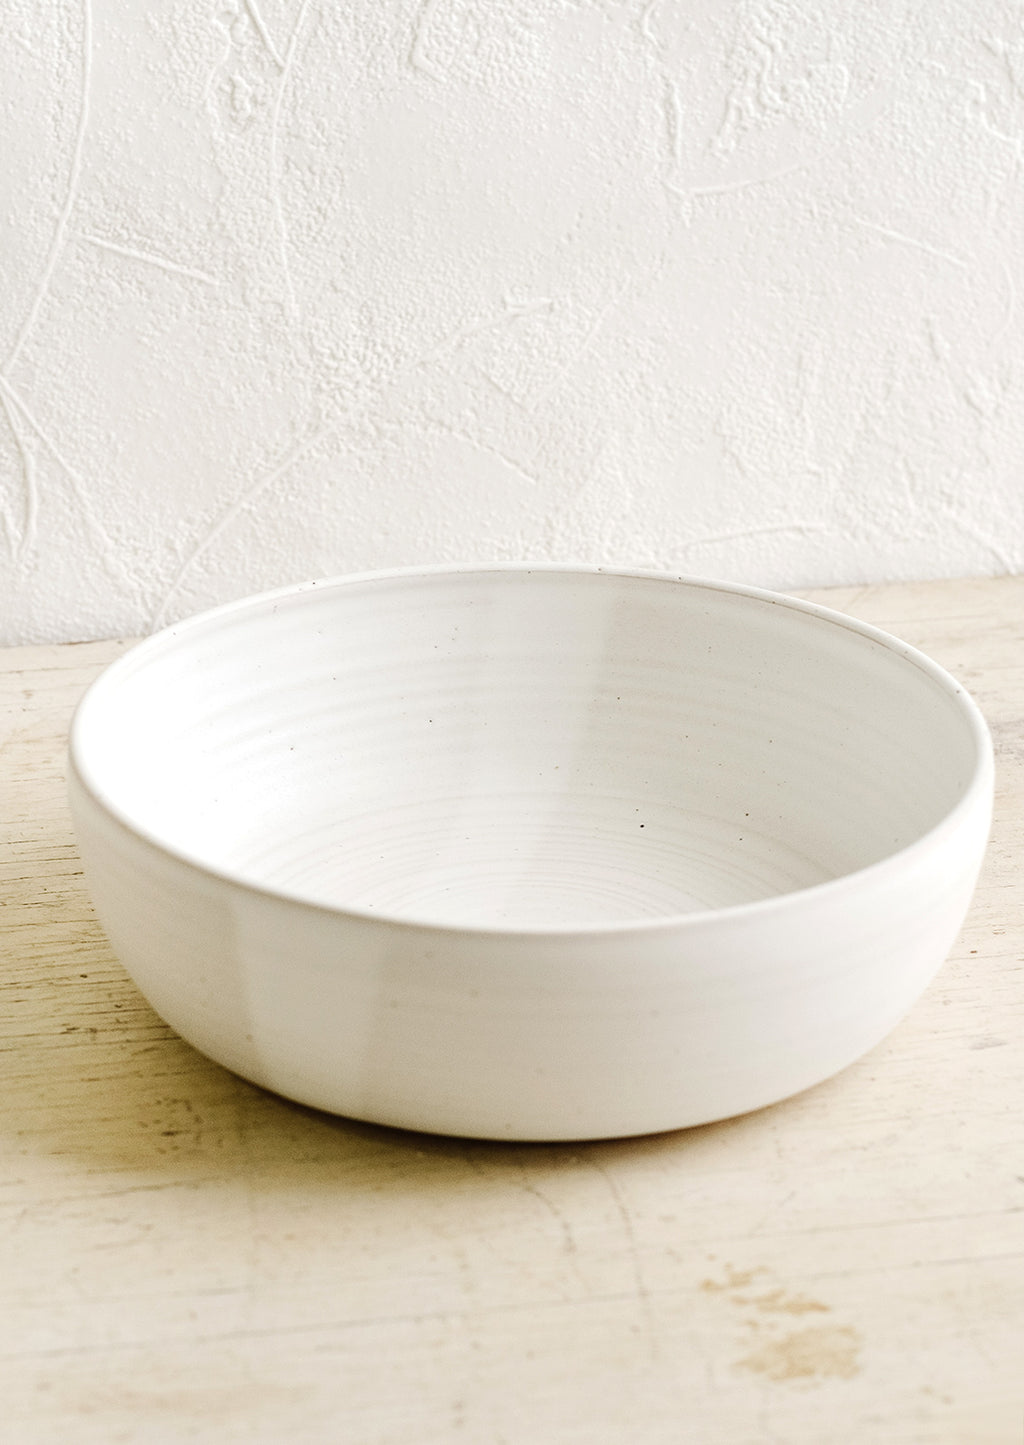 Matte White: A ceramic serving bowl in matte white.